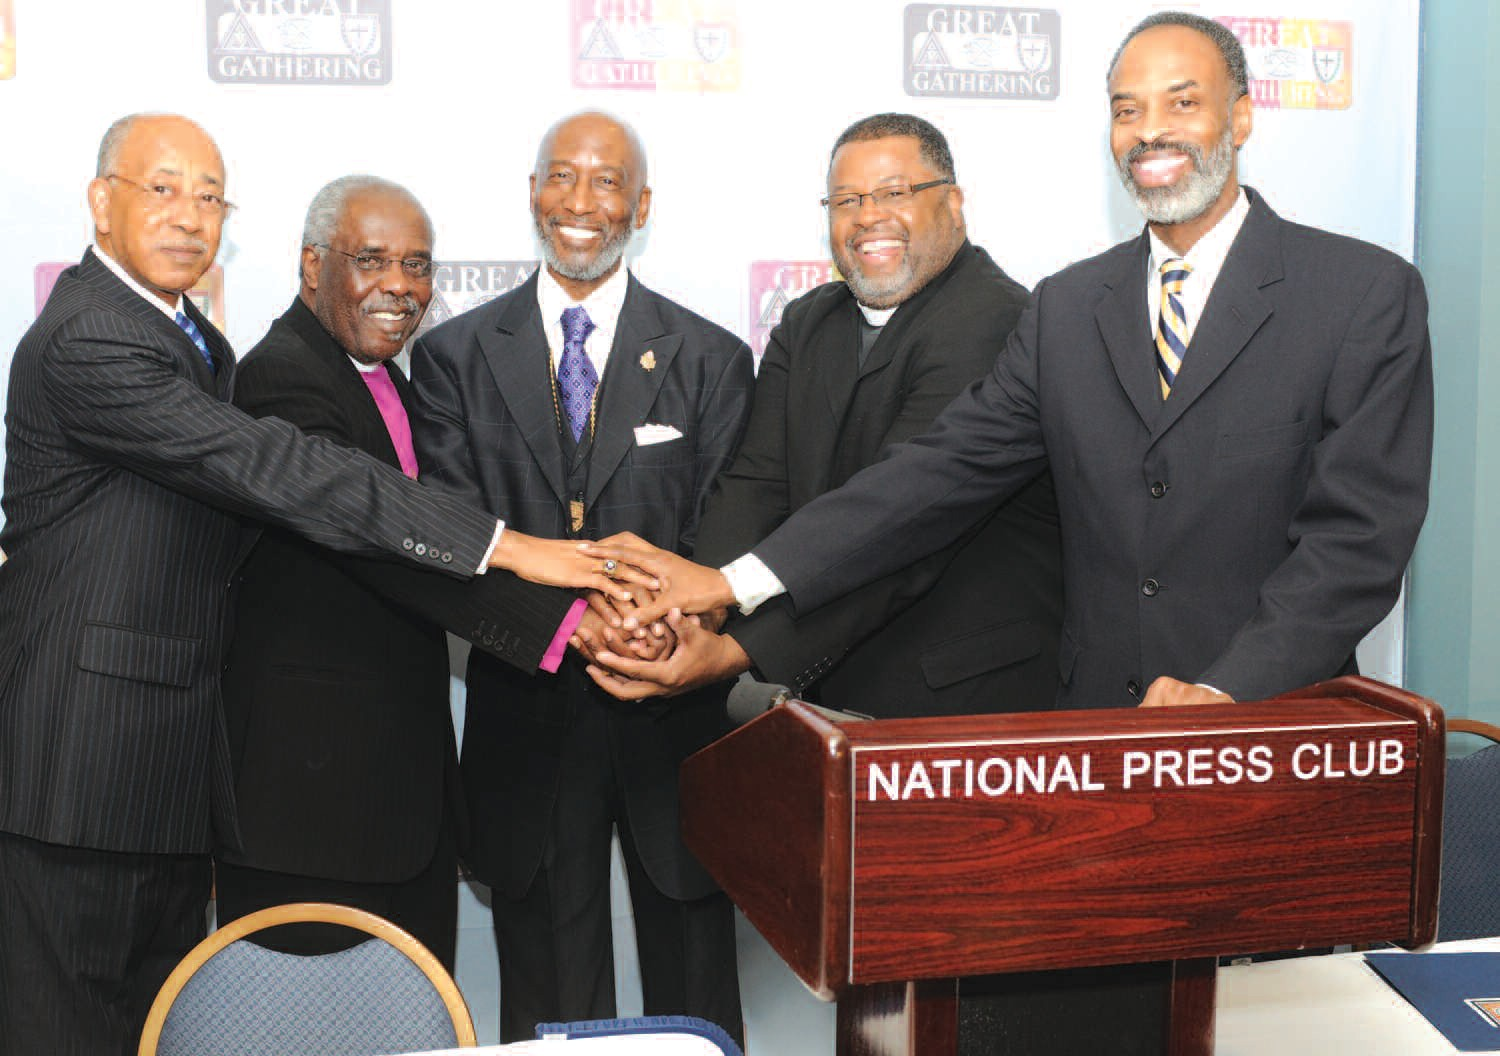 Shown are (l to r):Bishop Warren M. Brown (AME Zion), Bishop George Walker (AME Zion), Bishop John R. Bryant (AME), Rev. Paul L. Brown, Sr. (CME) and Rev. Staccato Powell (AME Zion). (Photo by Jason Miccolo Johnson)